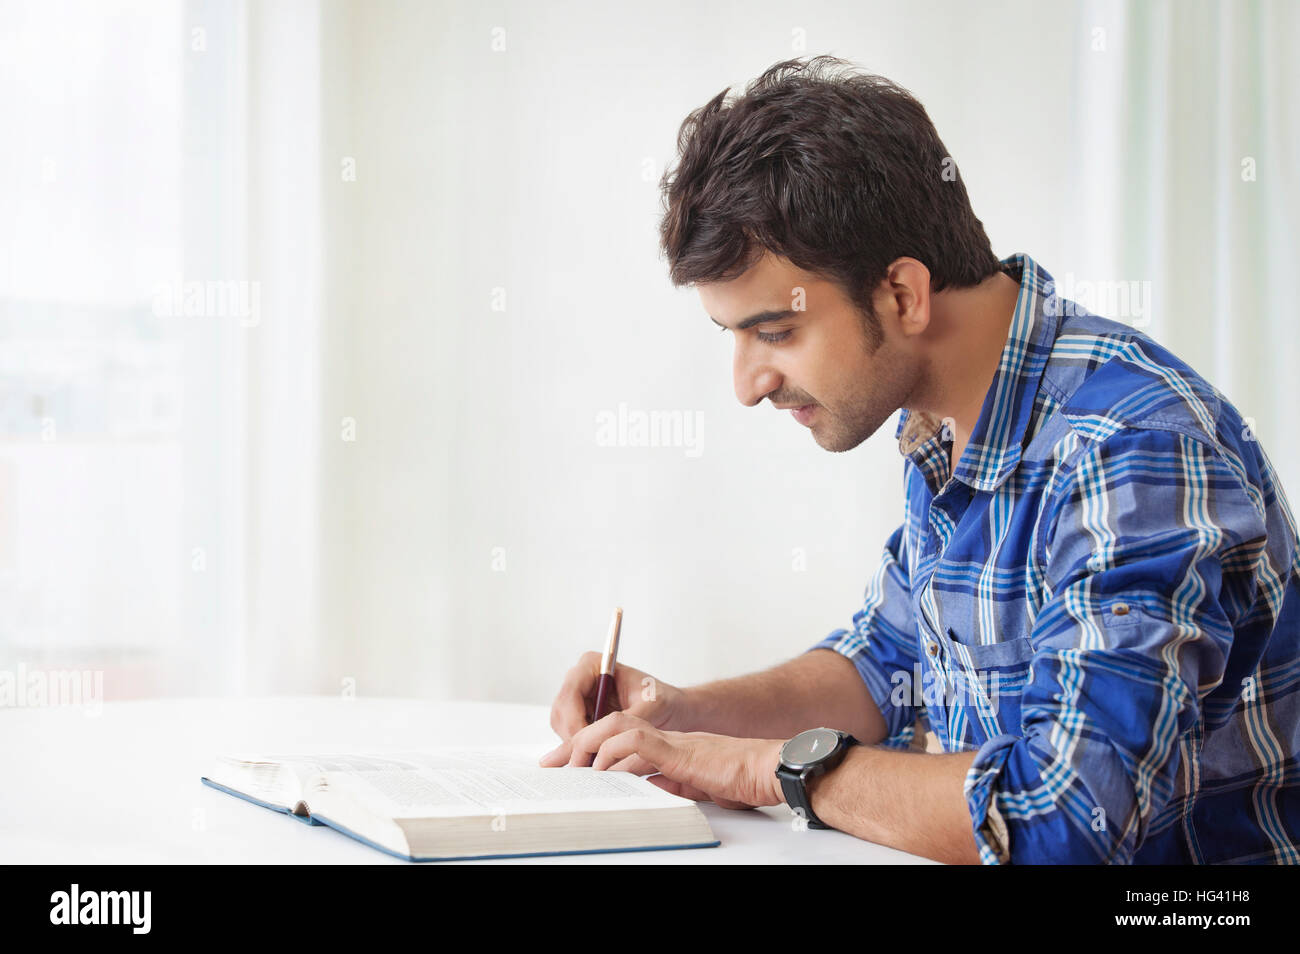 Young man studying and making notes Stock Photo